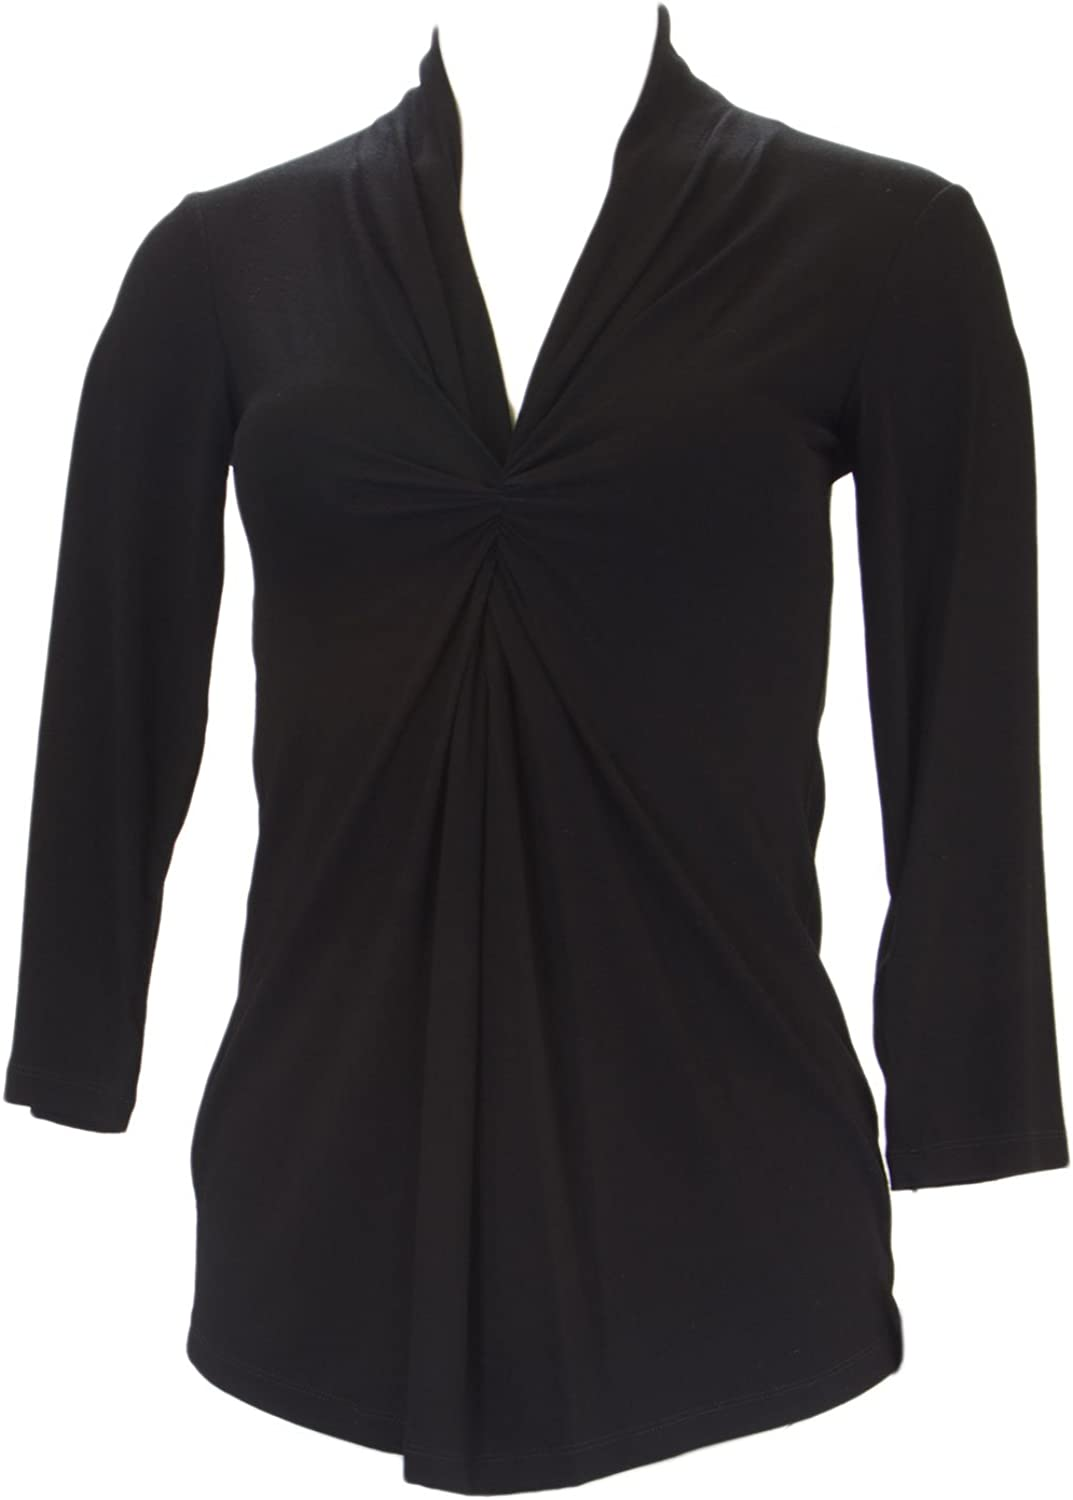 ANALILI Women's Black Front Twist Accent 3 4 Sleeve Top 422J10